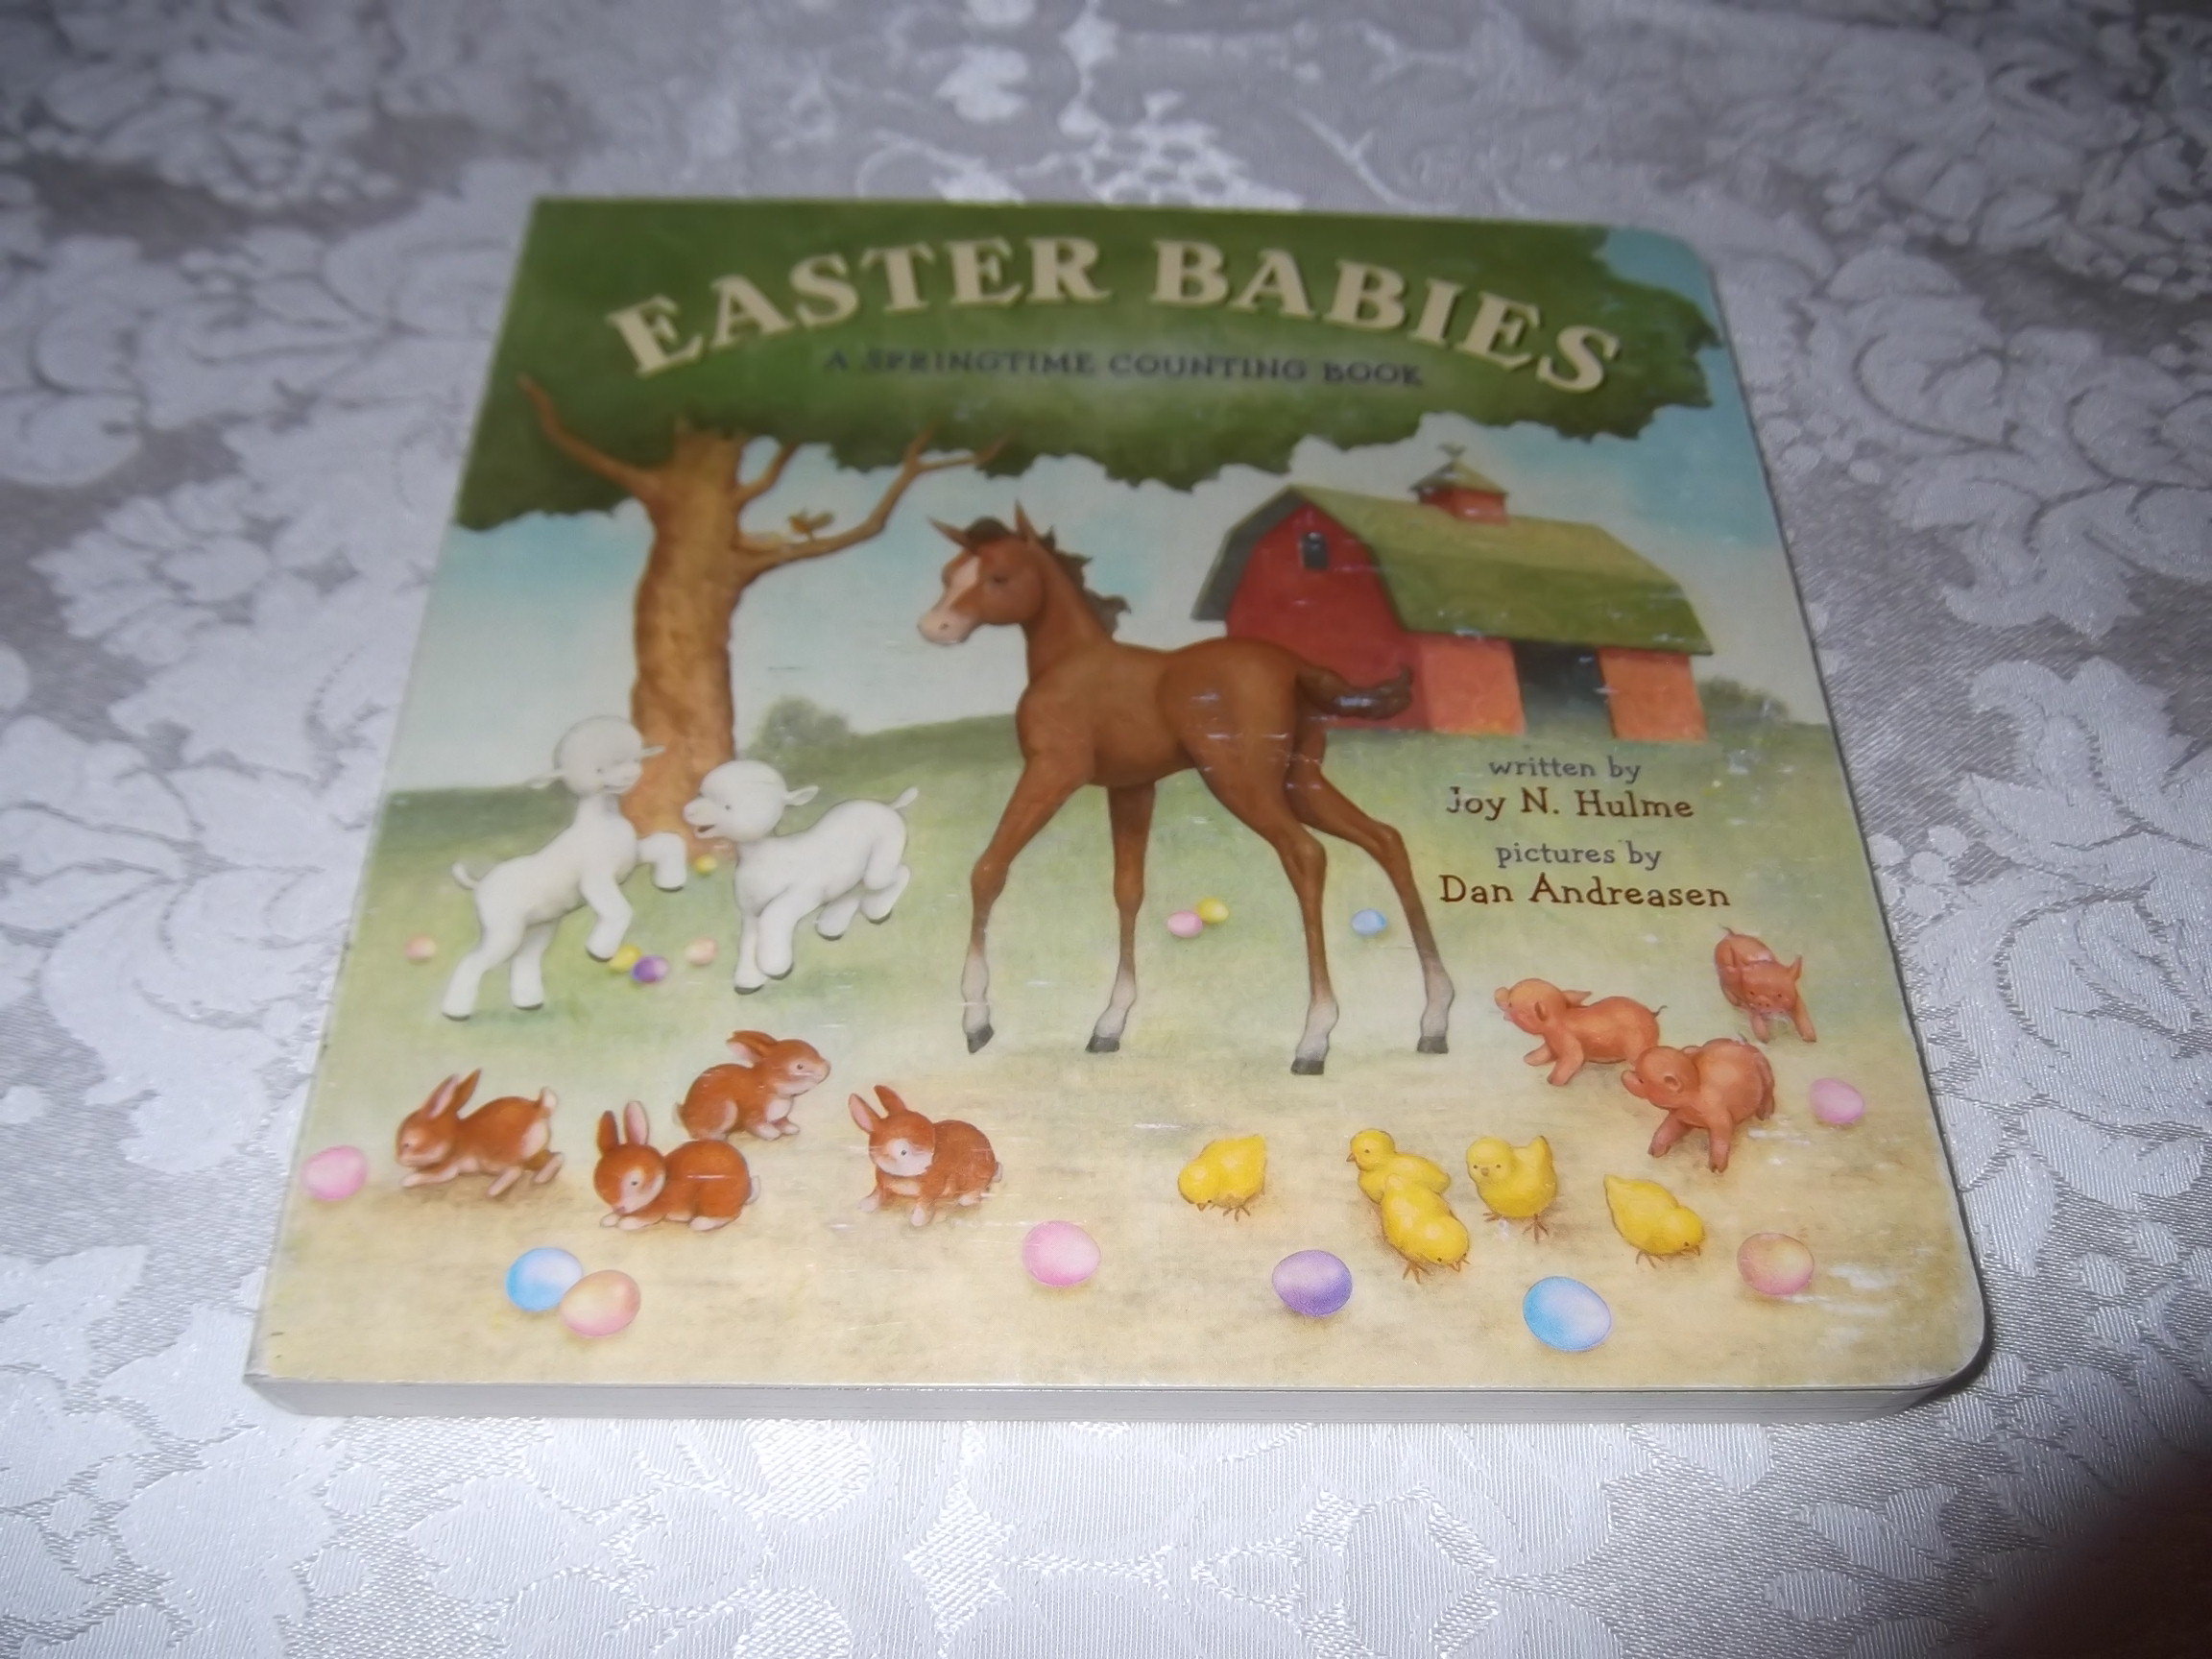 Easter Babies A Springtime Counting Book Joy N. Hulme very good board book